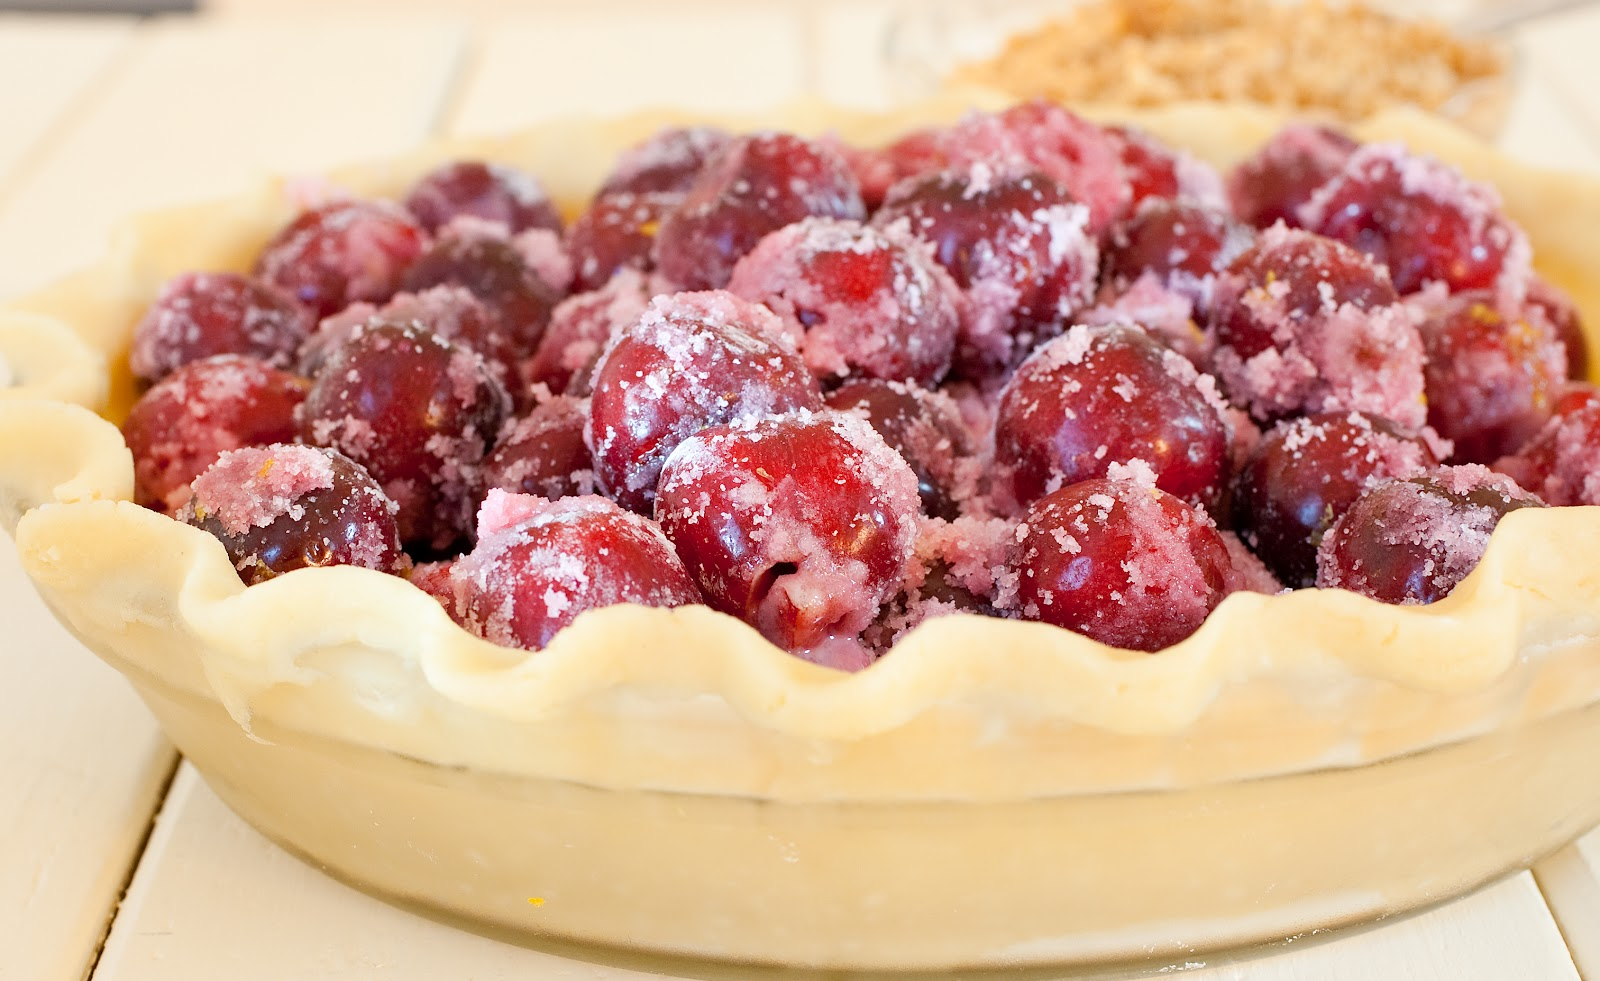 Tish Boyle Sweet Dreams: Fresh Cherry Crumble Pie